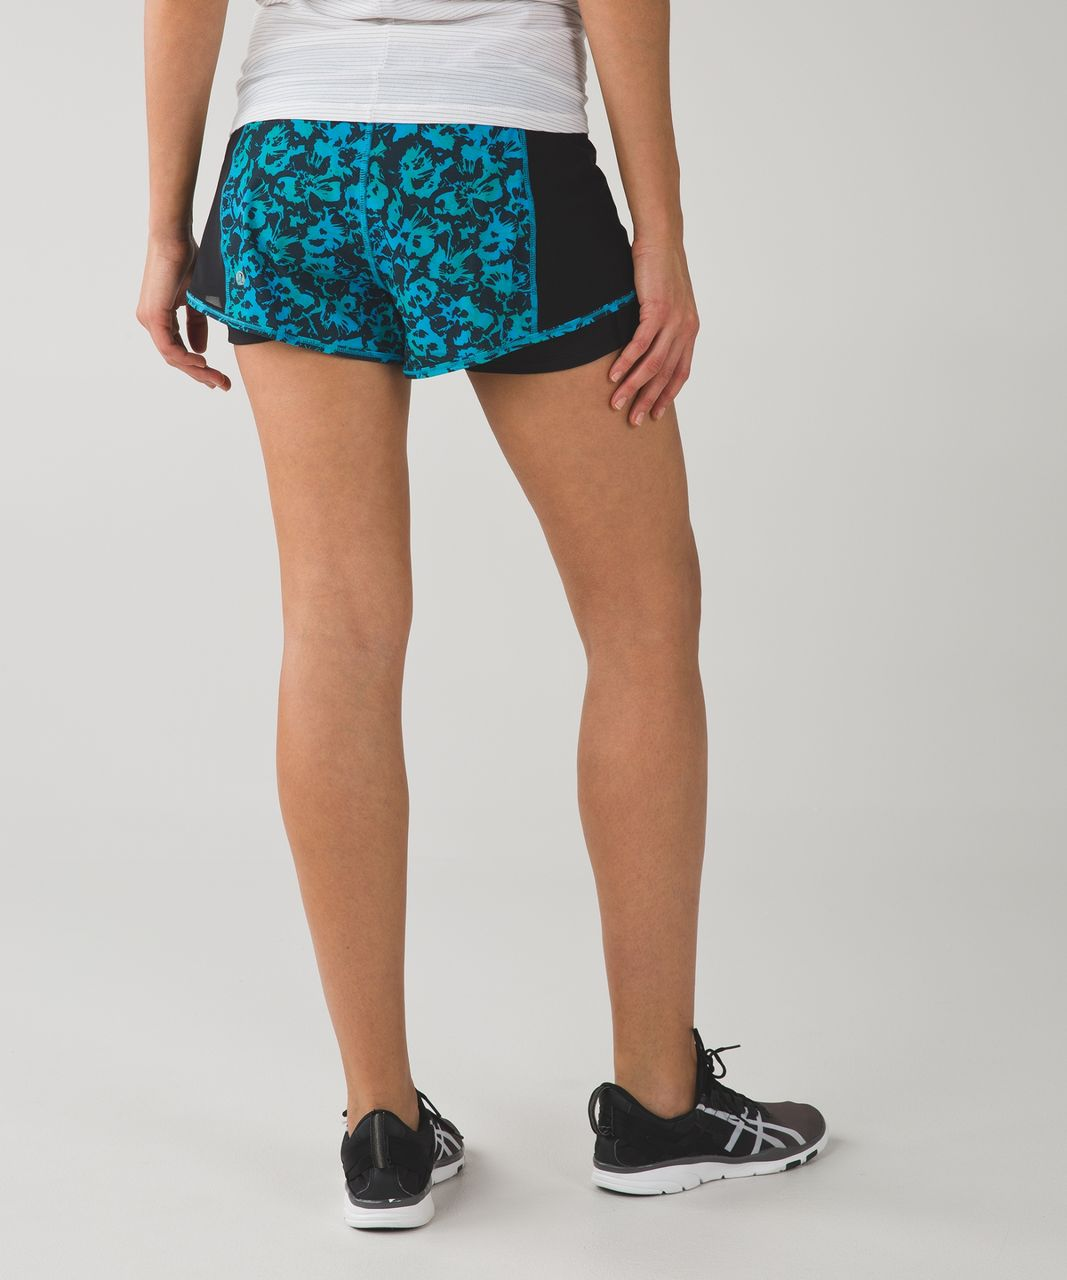 Lululemon Meshed Up Short - Fleur Sombre Kayak Blue Dragonfly / Black / Dragonfly